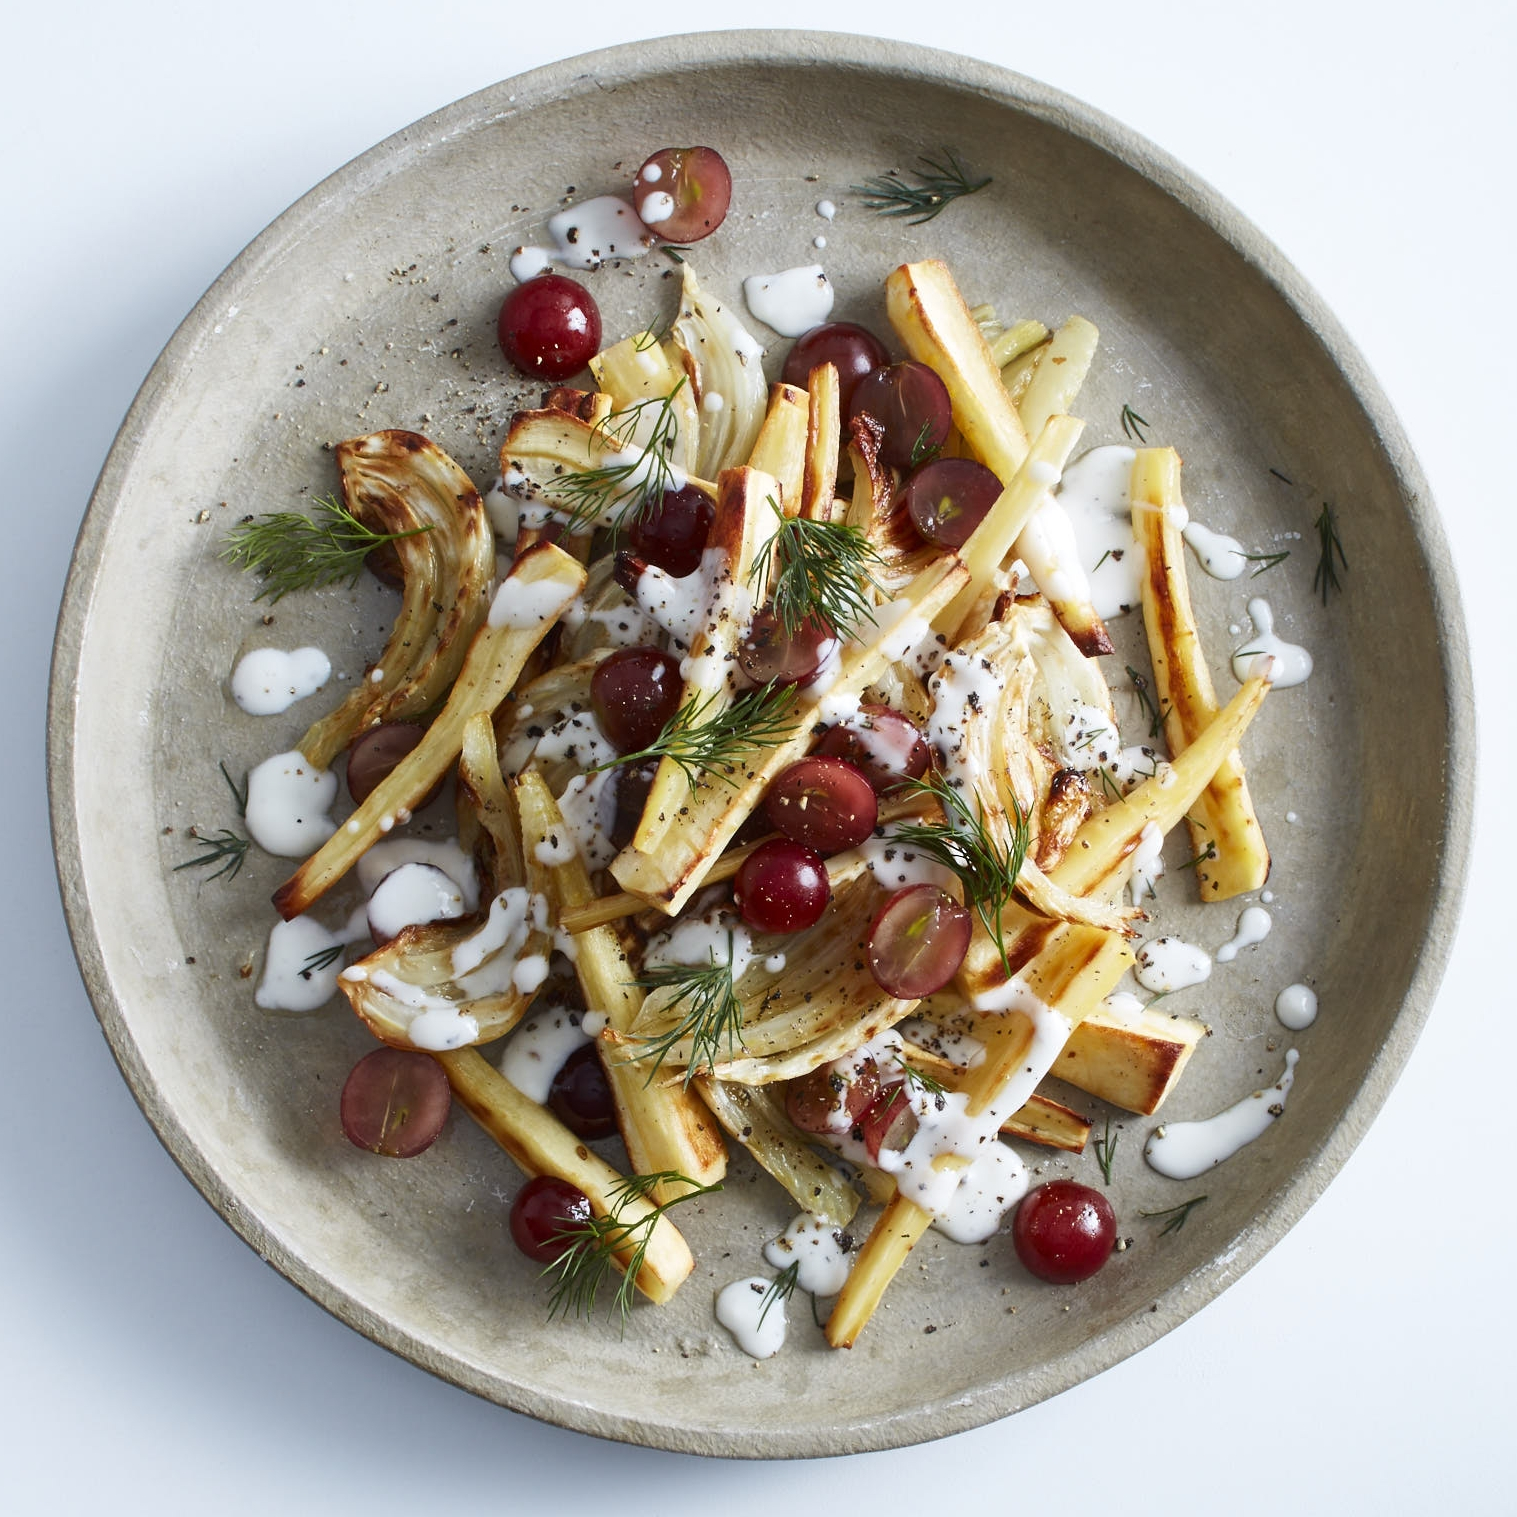 Roasted Root Veg Salad w Dill Yoghurt Dressing by Chef Mike Ward